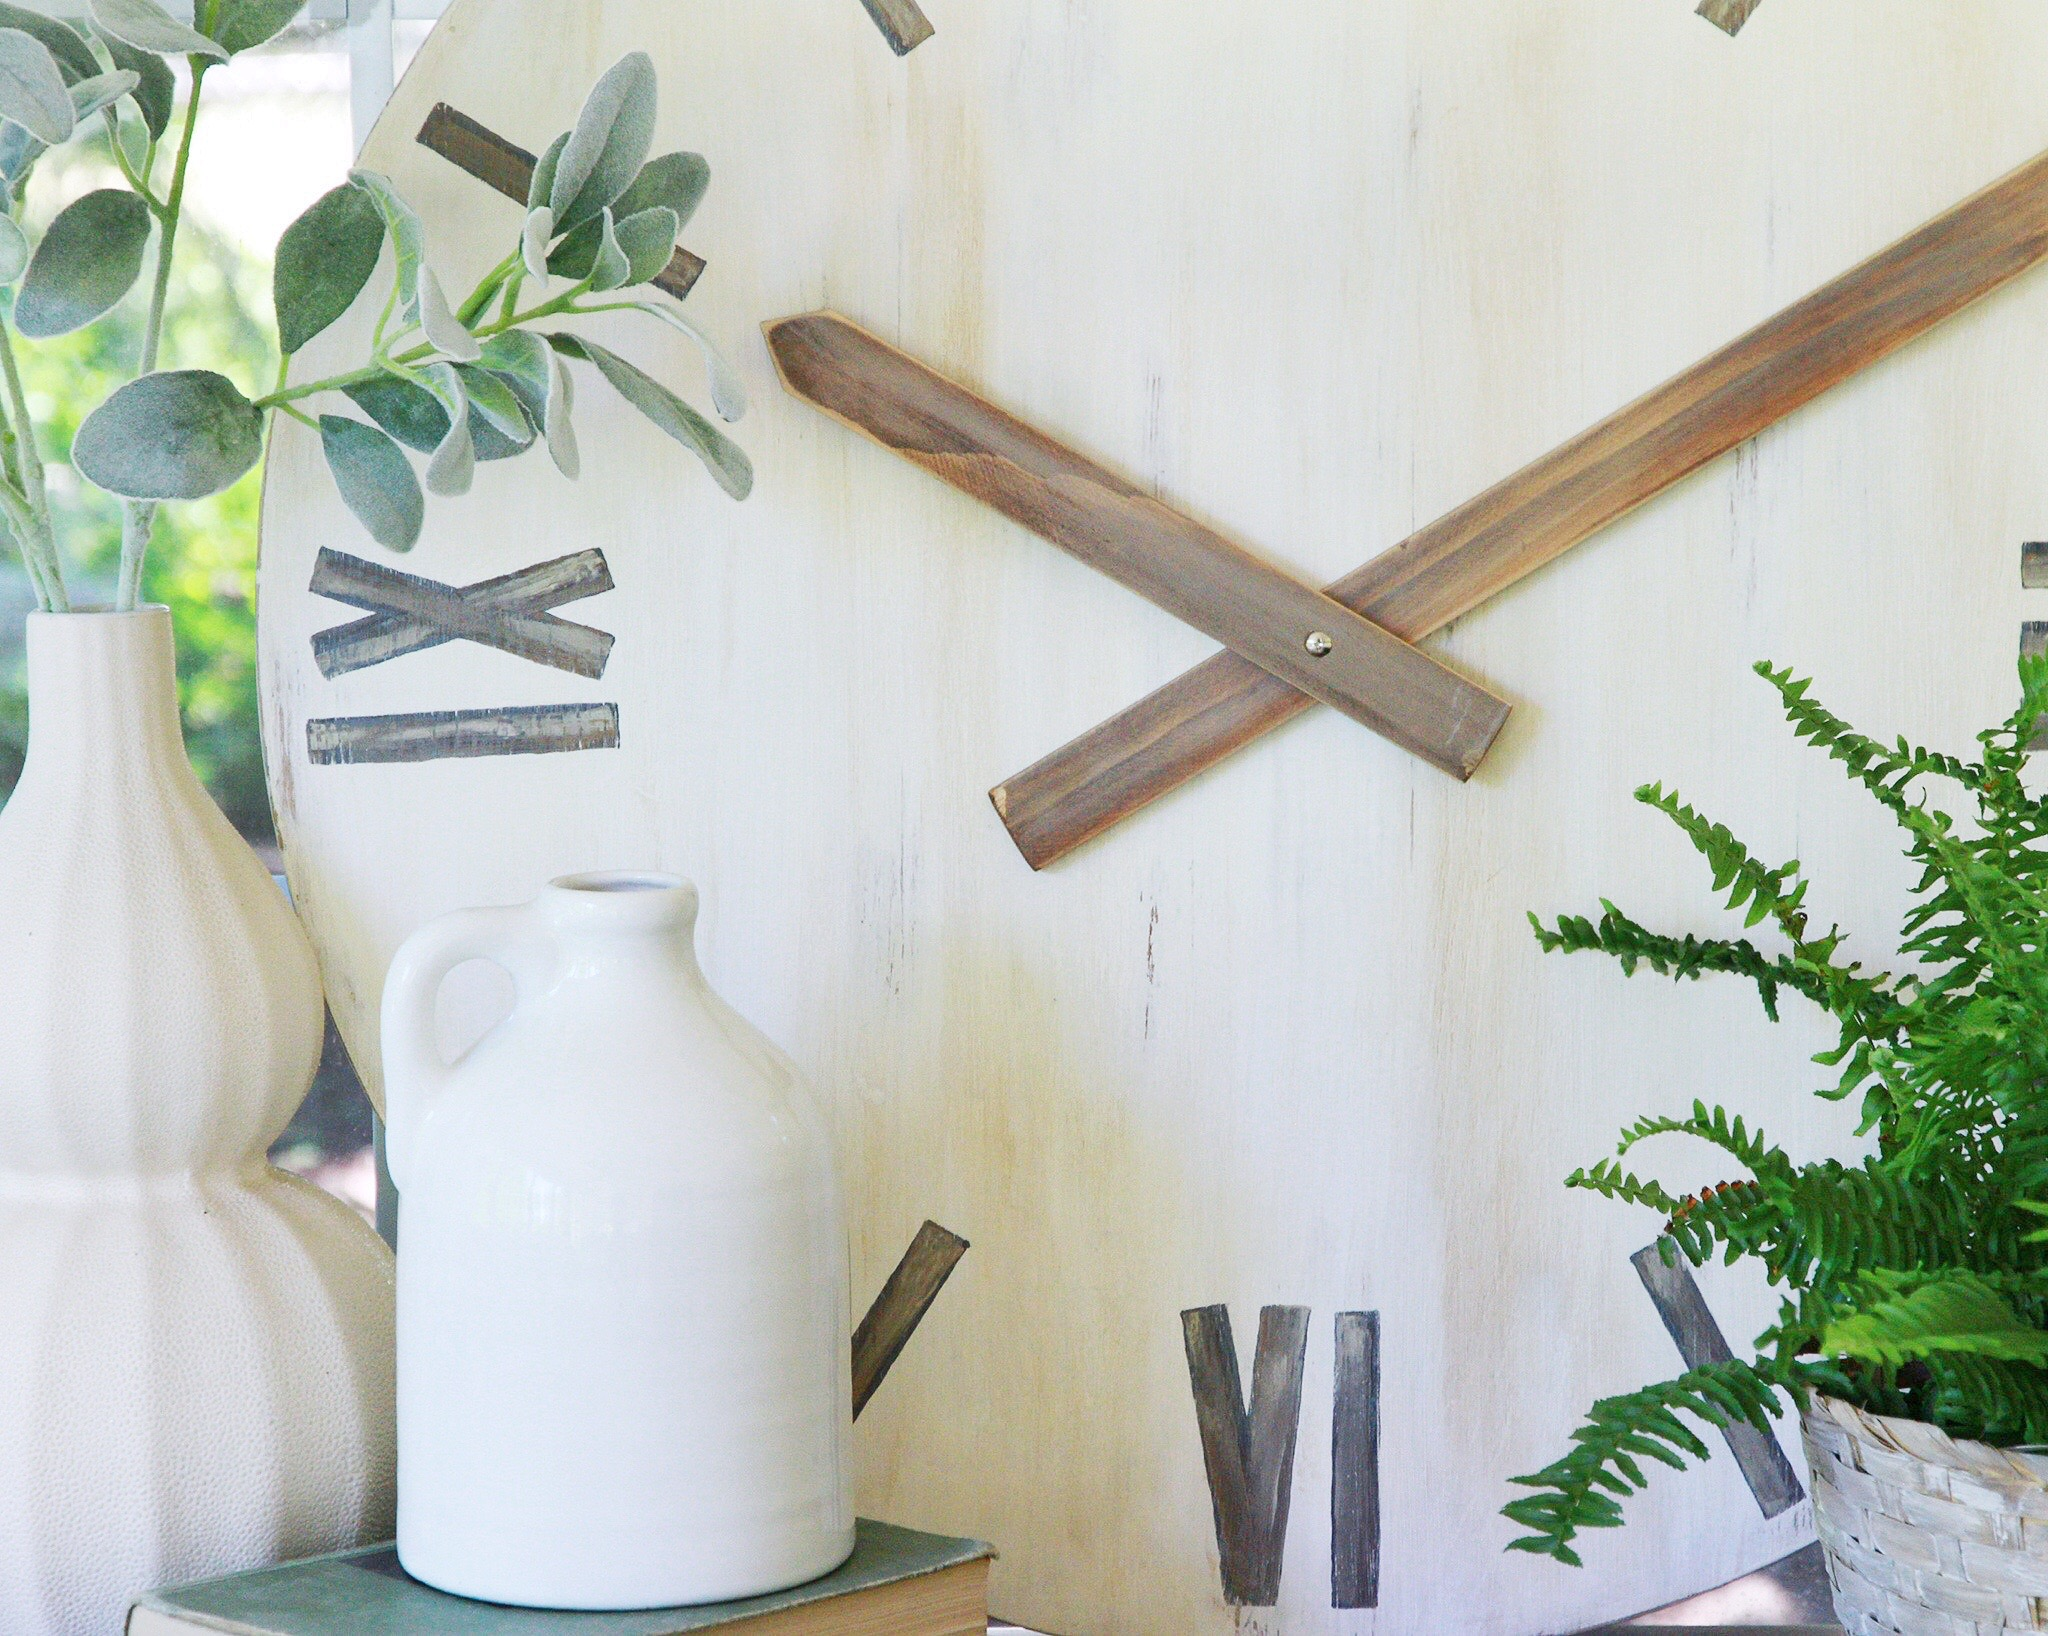 An old thrifted table top transformed into a decorative clock